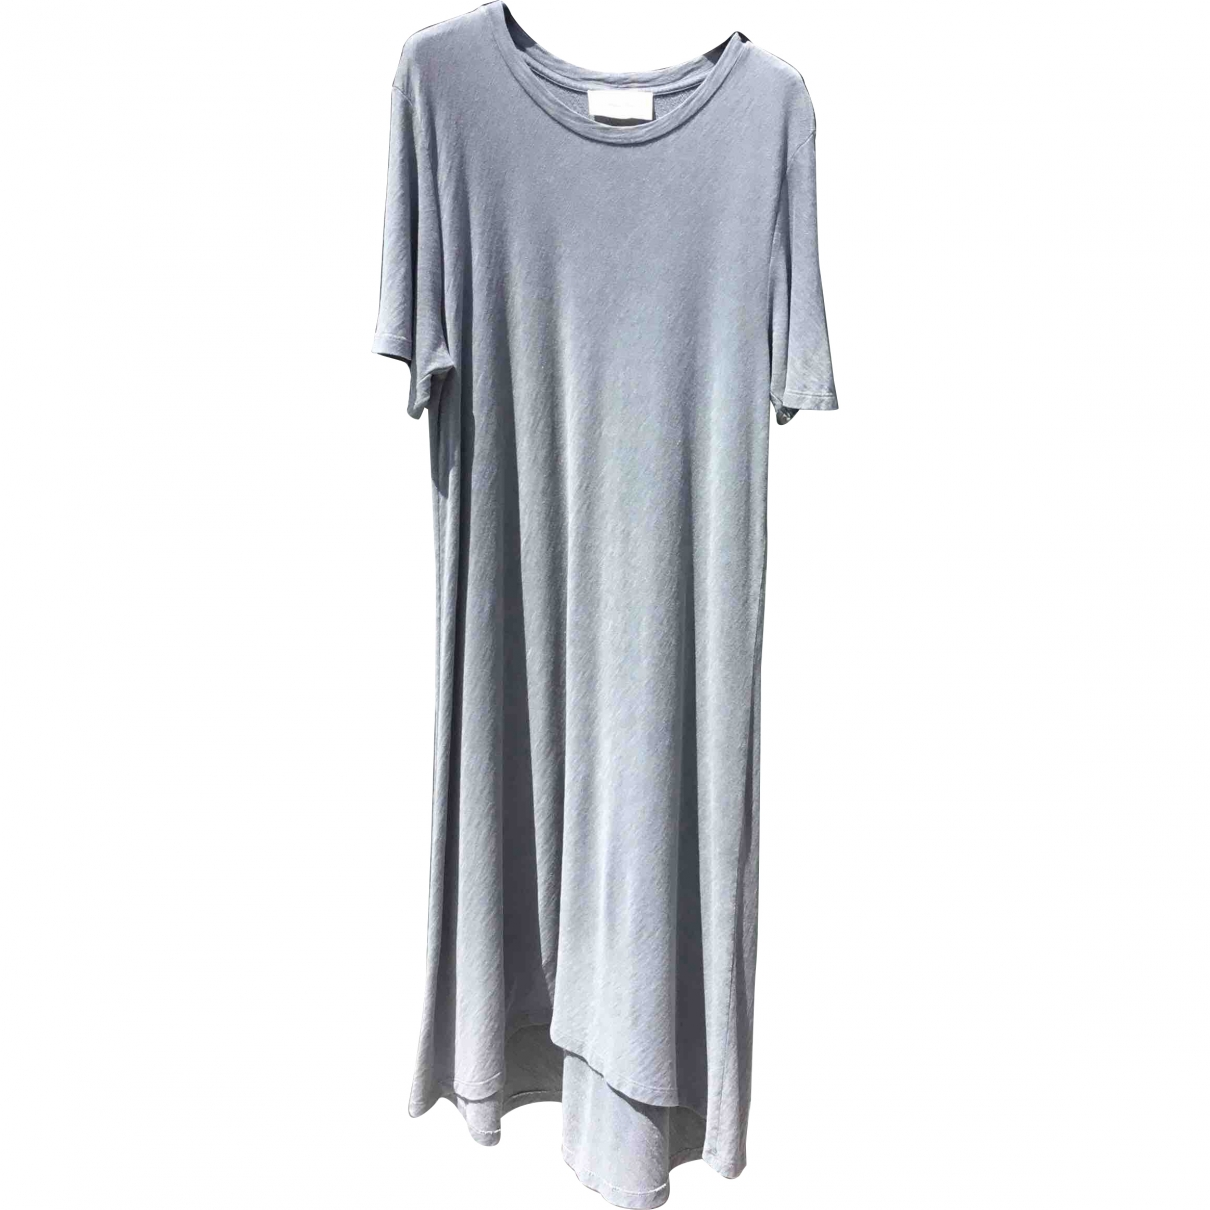 American Vintage \N Grey Cotton dress for Women S International